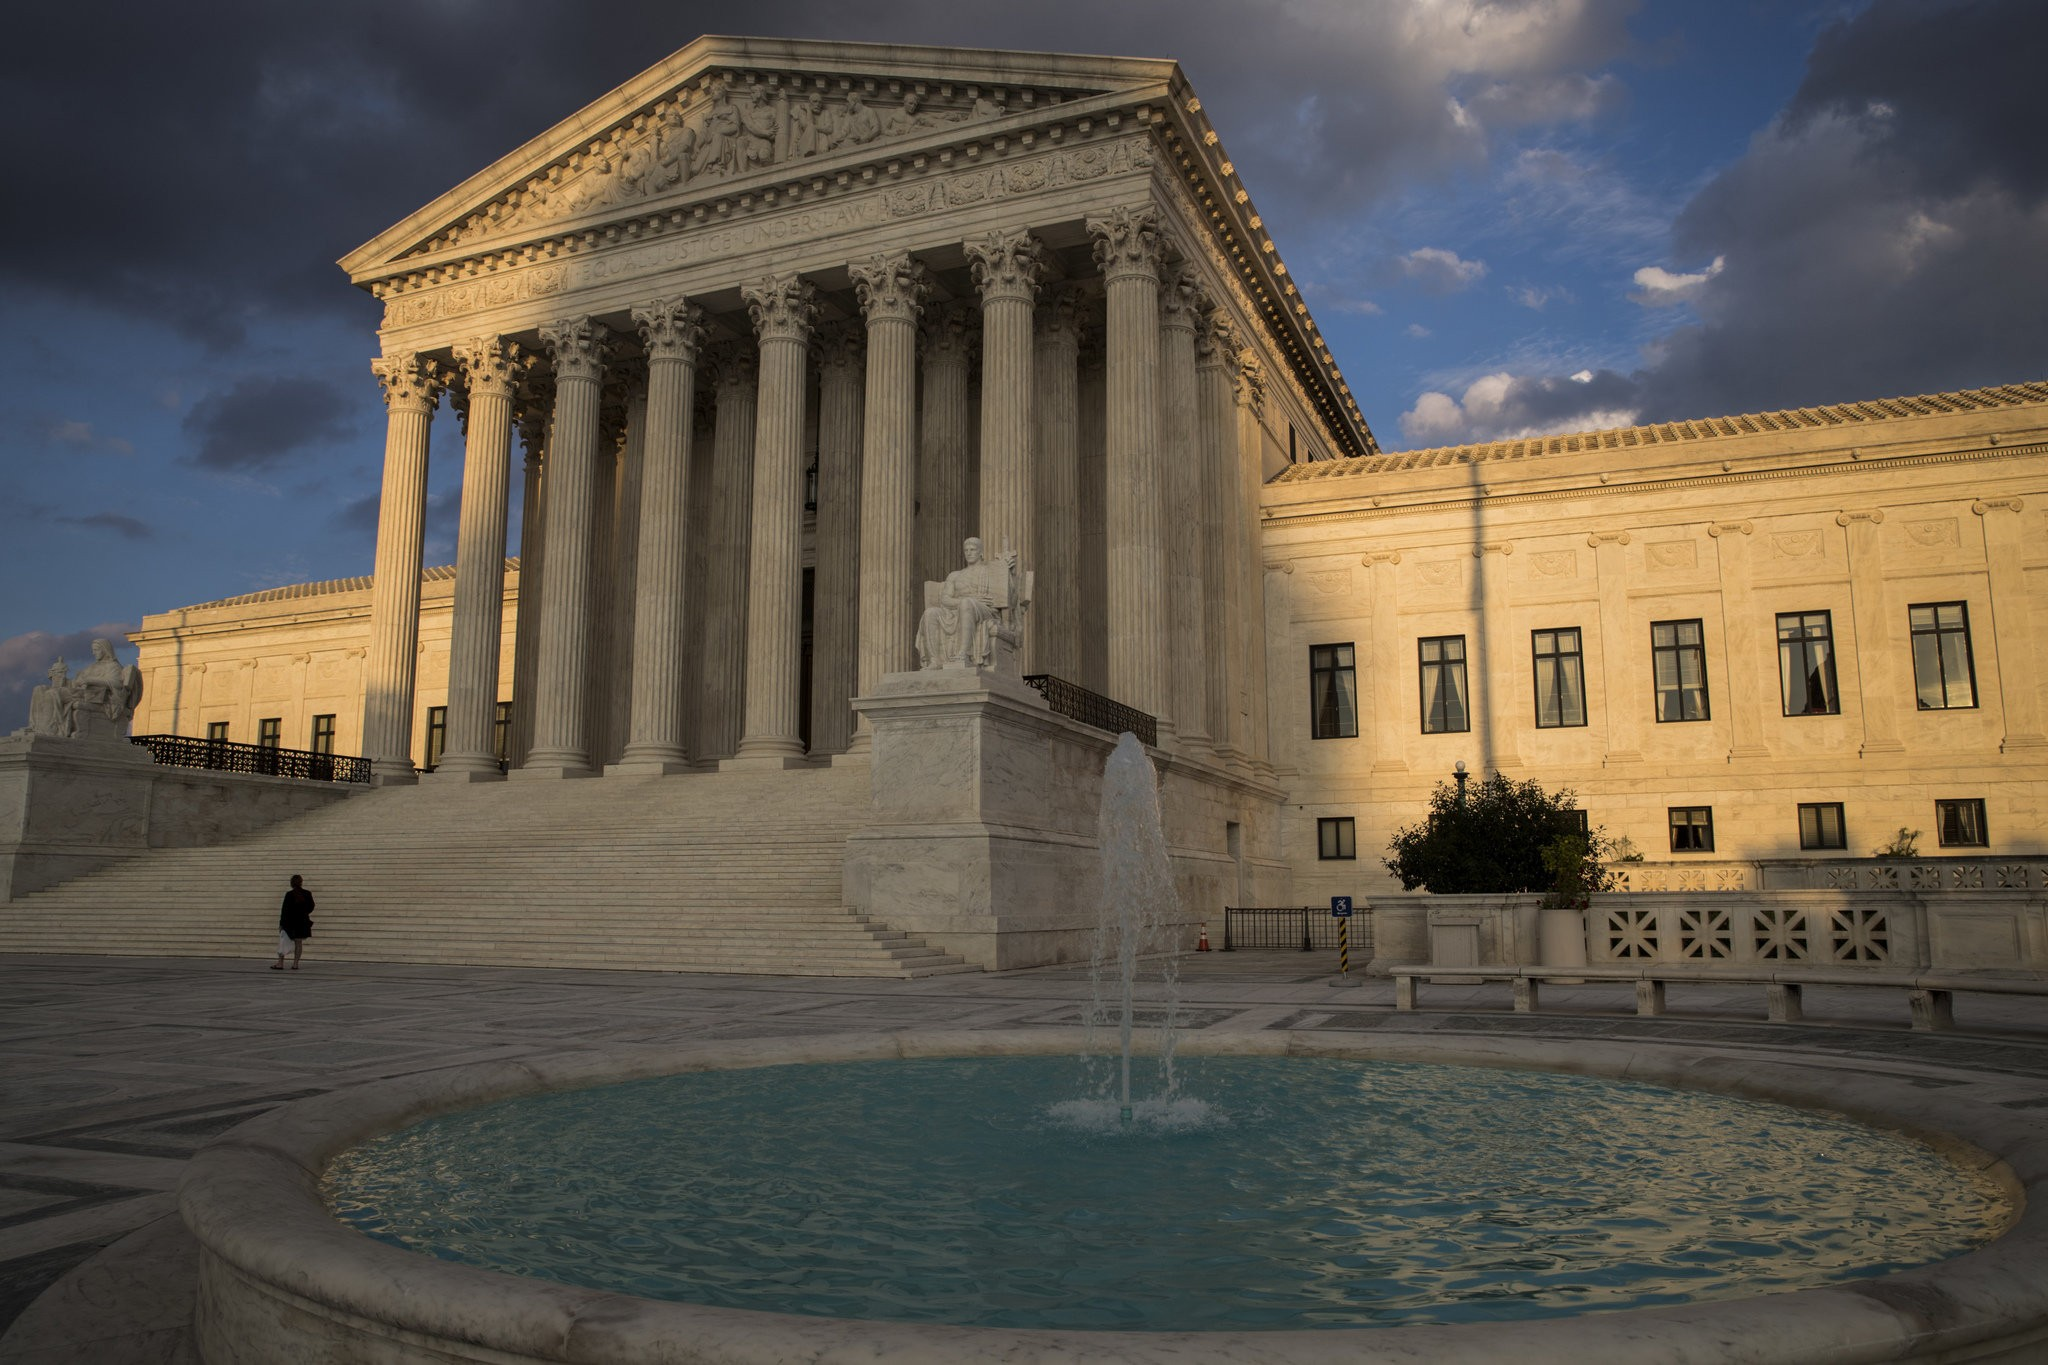 Police need warrants to track cellphones, Supreme Court rules - al com